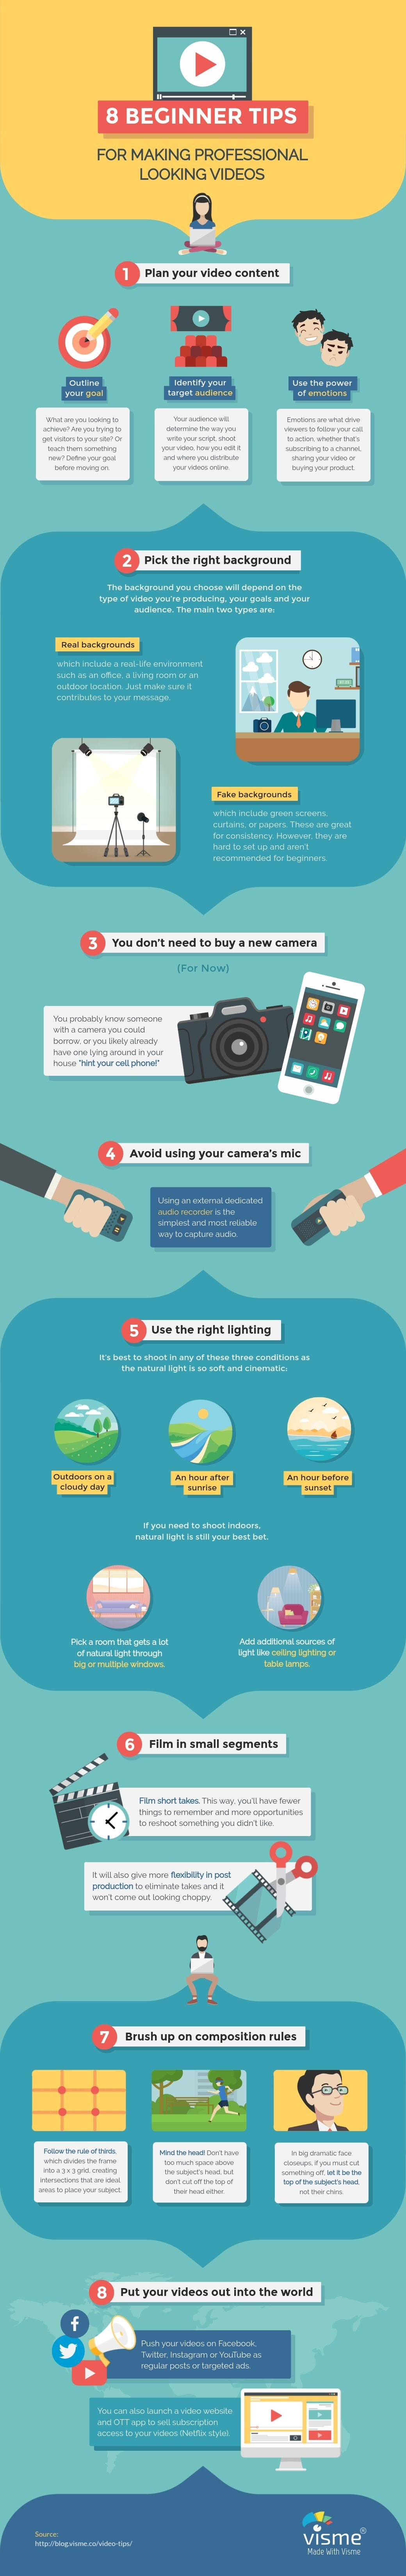 8 Beginner Tips for Making Professional-Looking Videos [Infographic] | Social Media Today